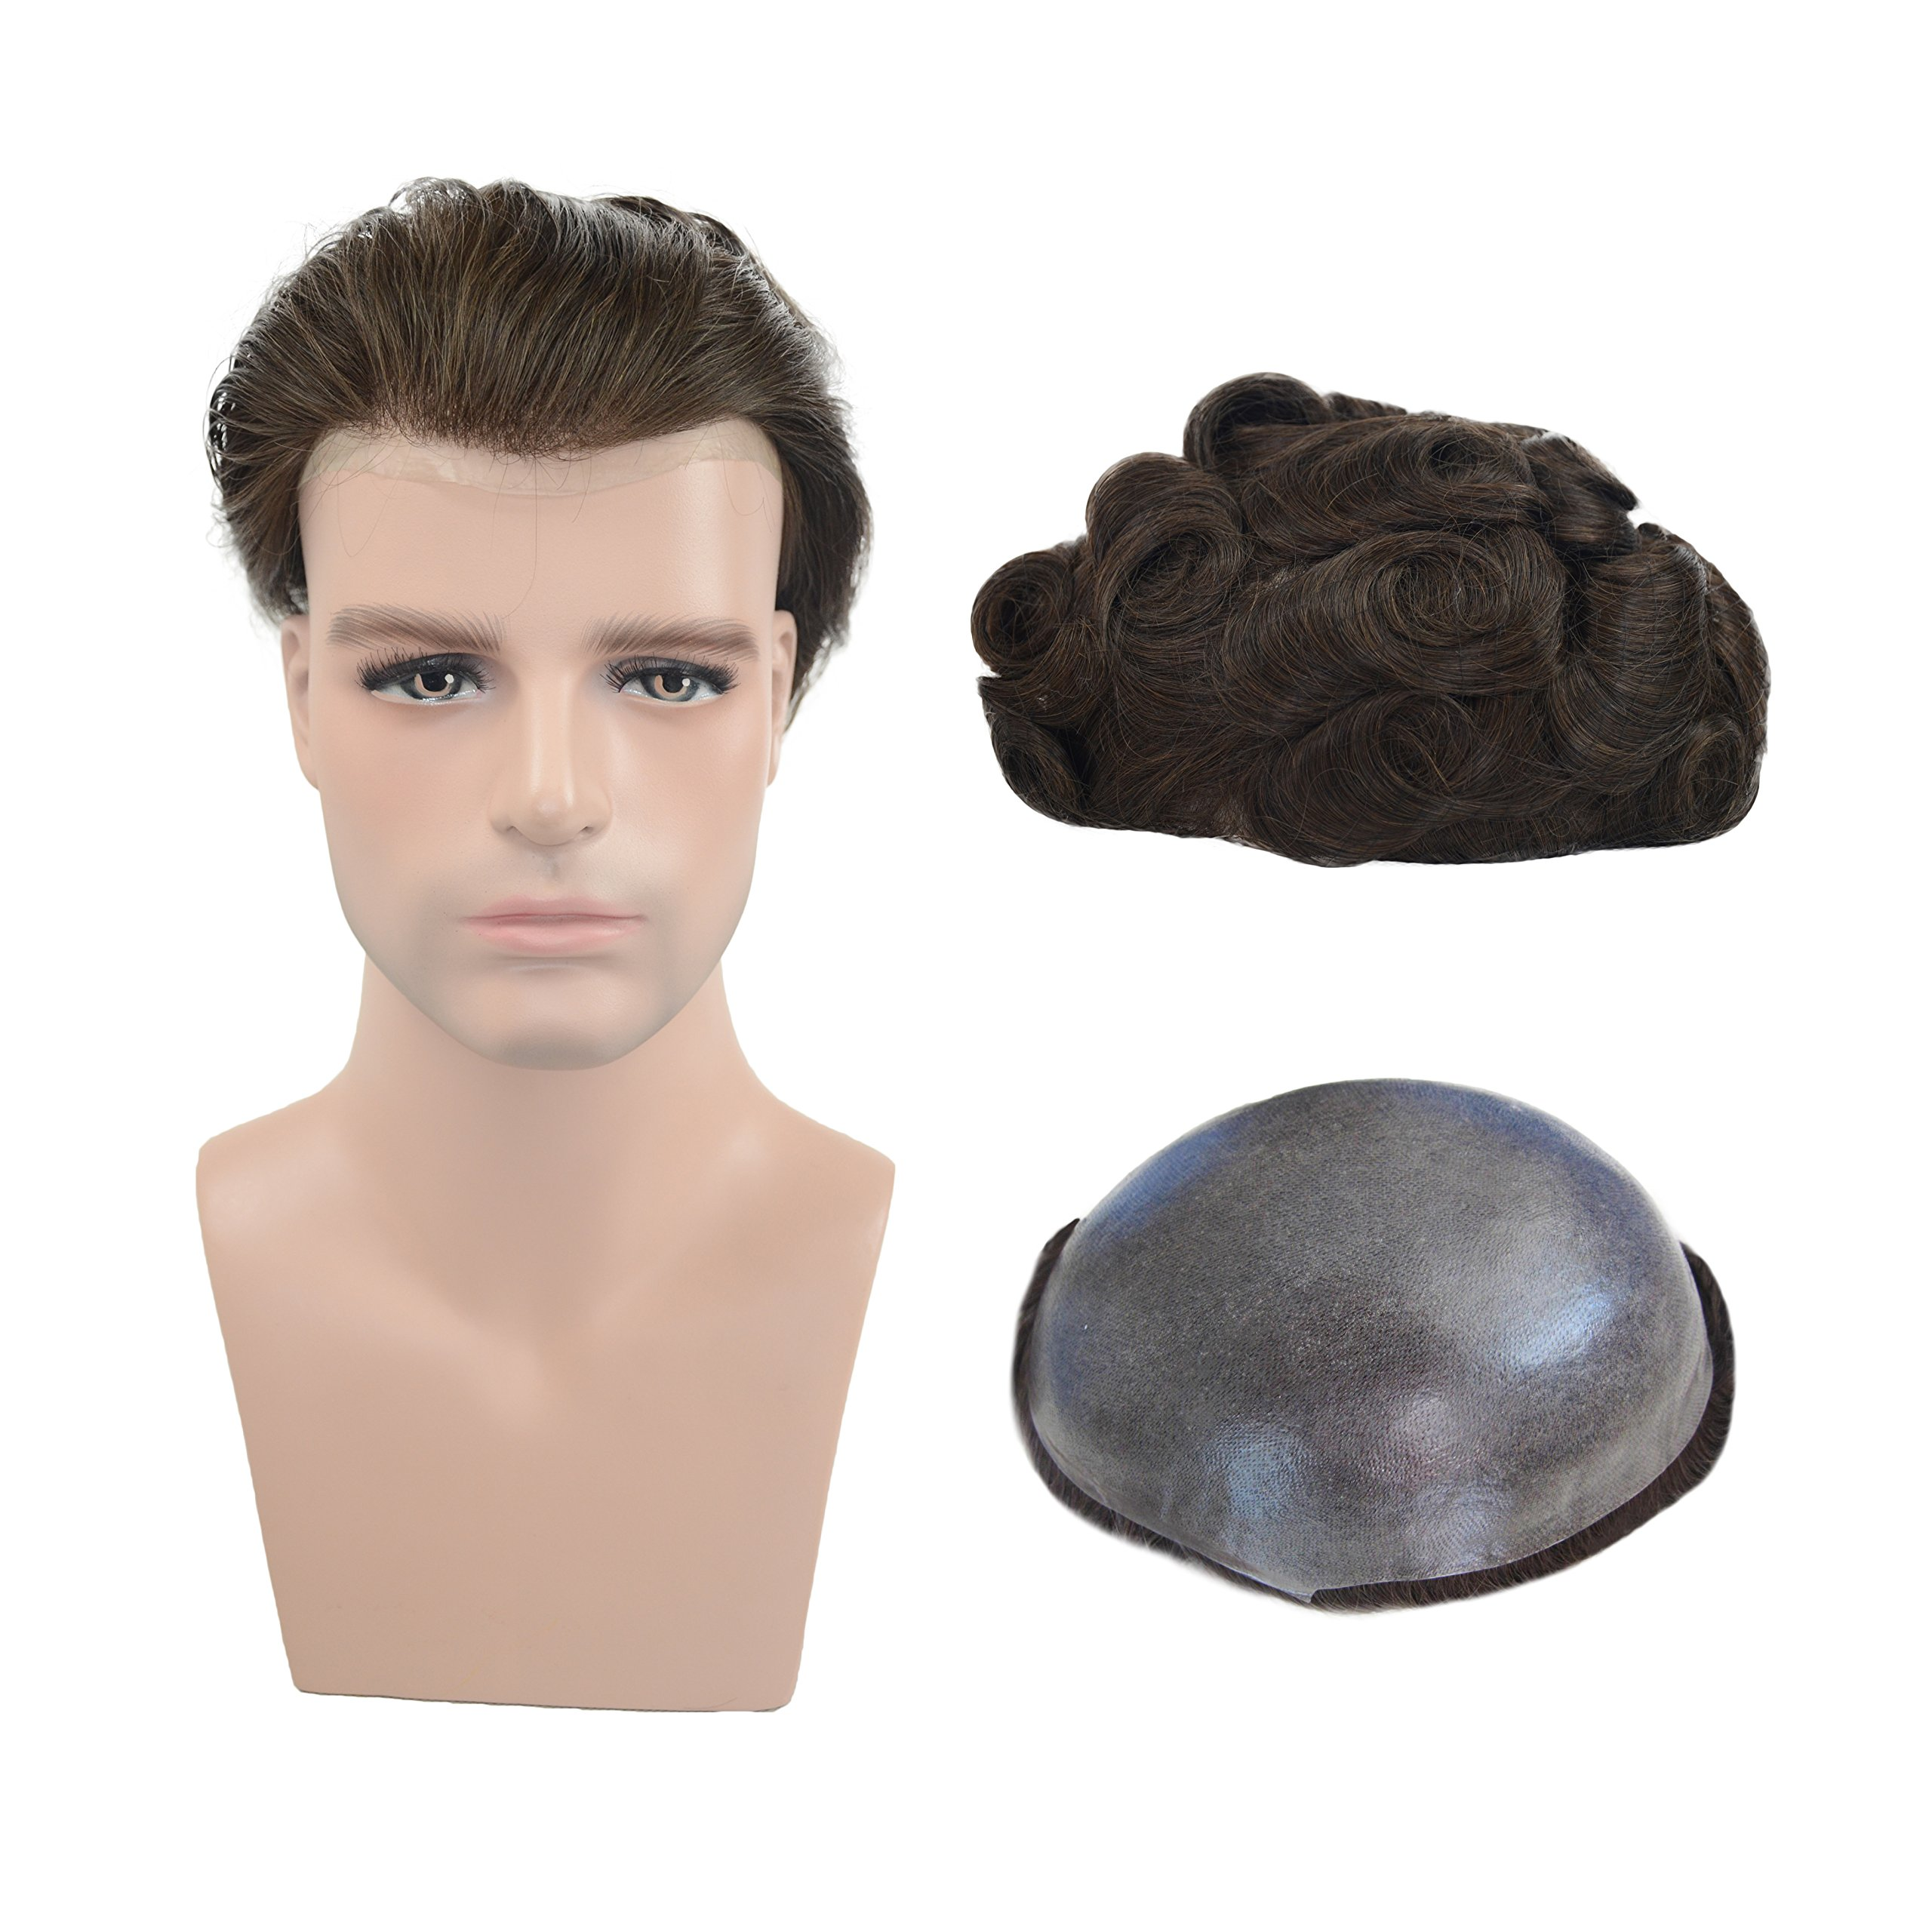 Human Hair Thin Skin Toupee Hairpieces For Men, Veer European Virgin Human Hair Replacement Wigs Natural Wave V-looped Hair Dark Brown Color(#2)